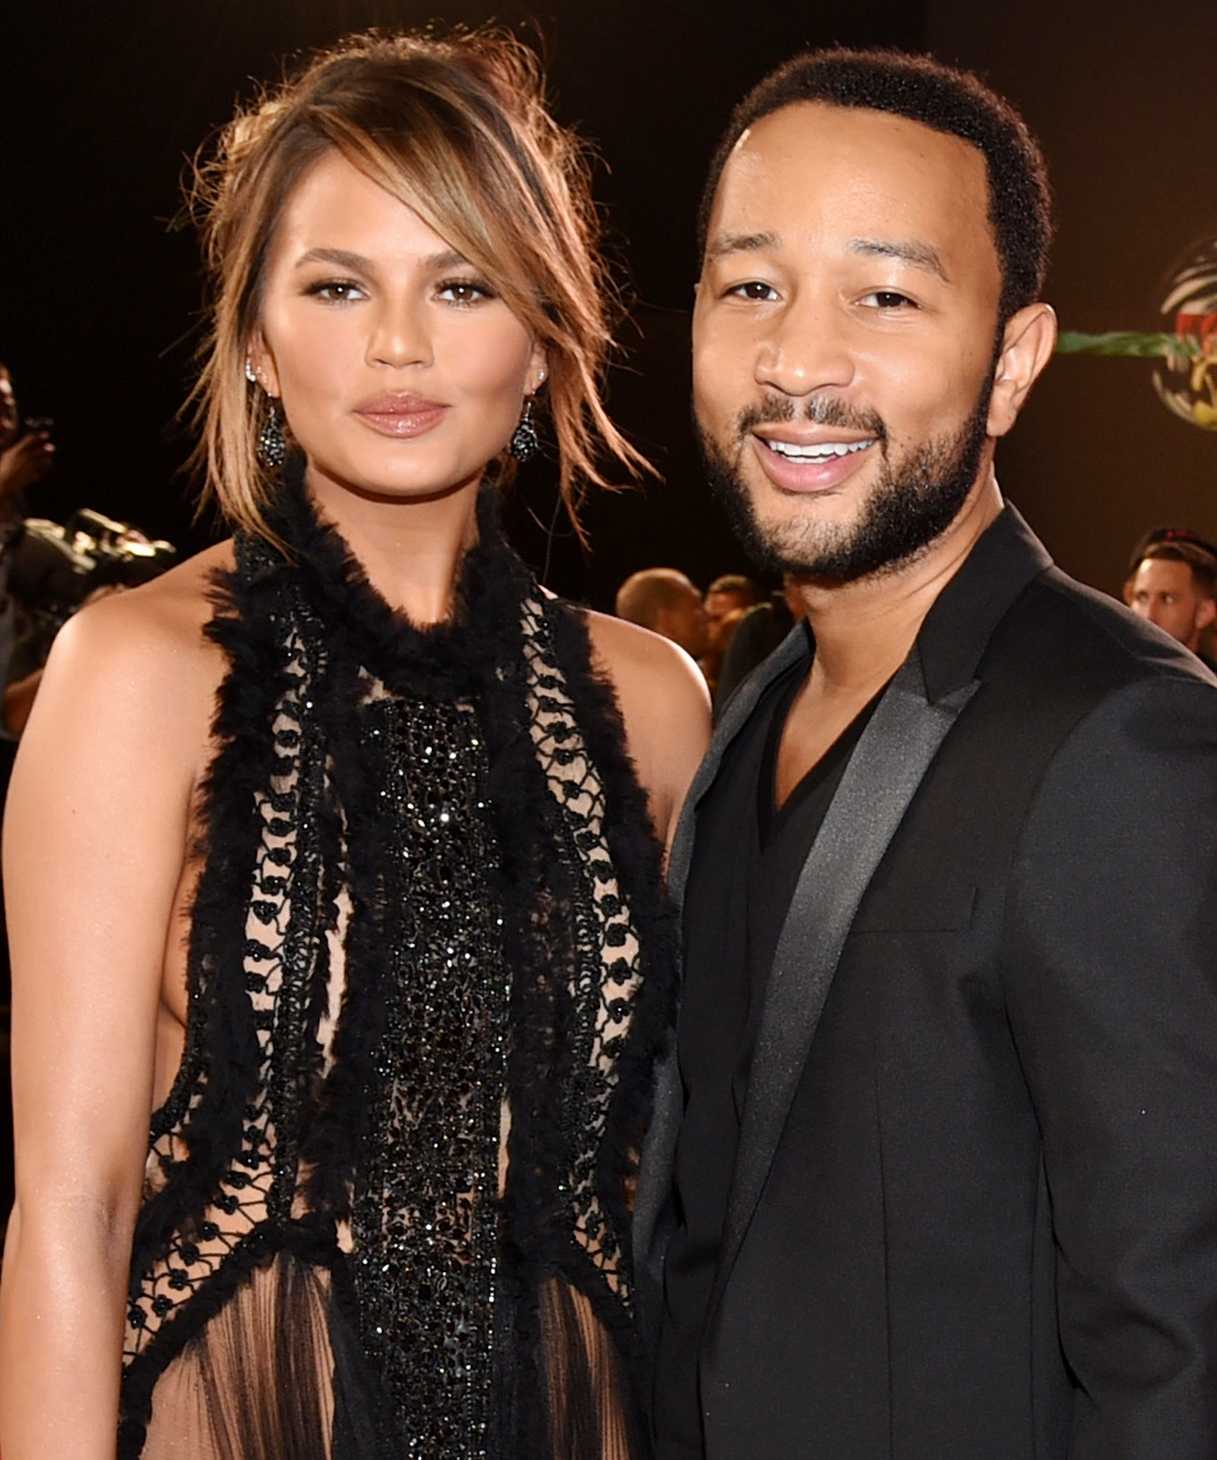 John Legend Hilariously Shows Off Chrissy Teigen's Underwear Drawer—Watch the Full Closet Tour